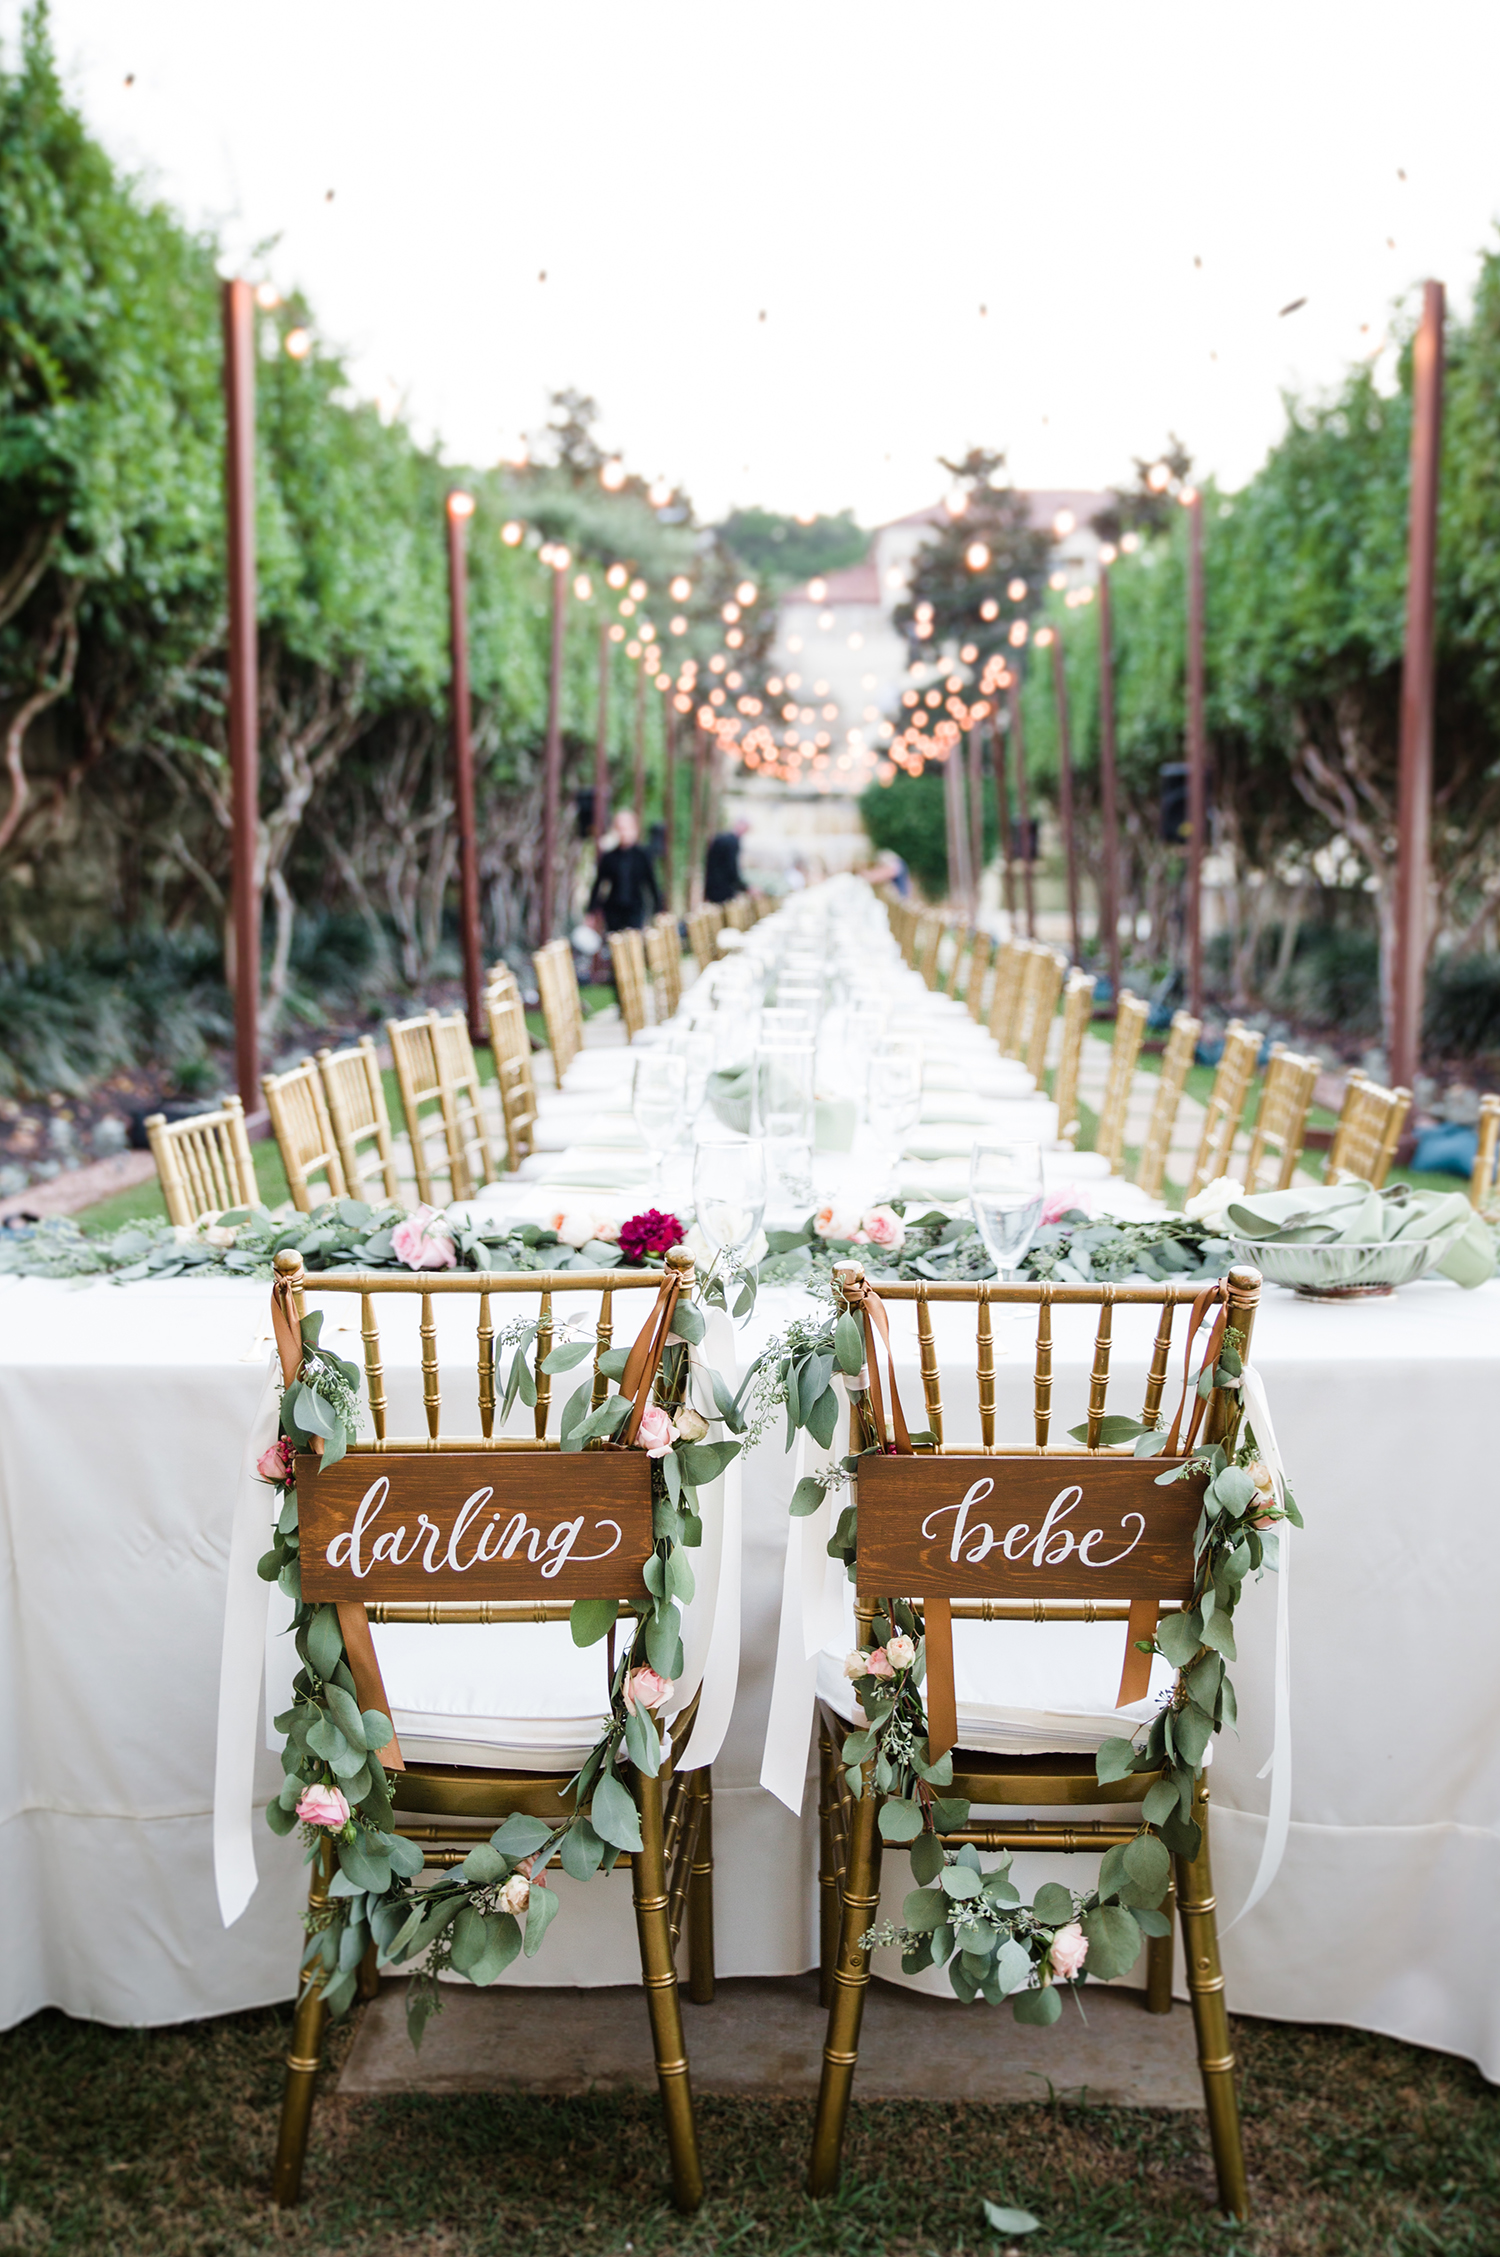 livvyland-blog-olivia-watson-wedding-villa-del-lago-austin-texas-fall-blush-burgundy-classic-romantic-festoon-lighting-farm-table-long